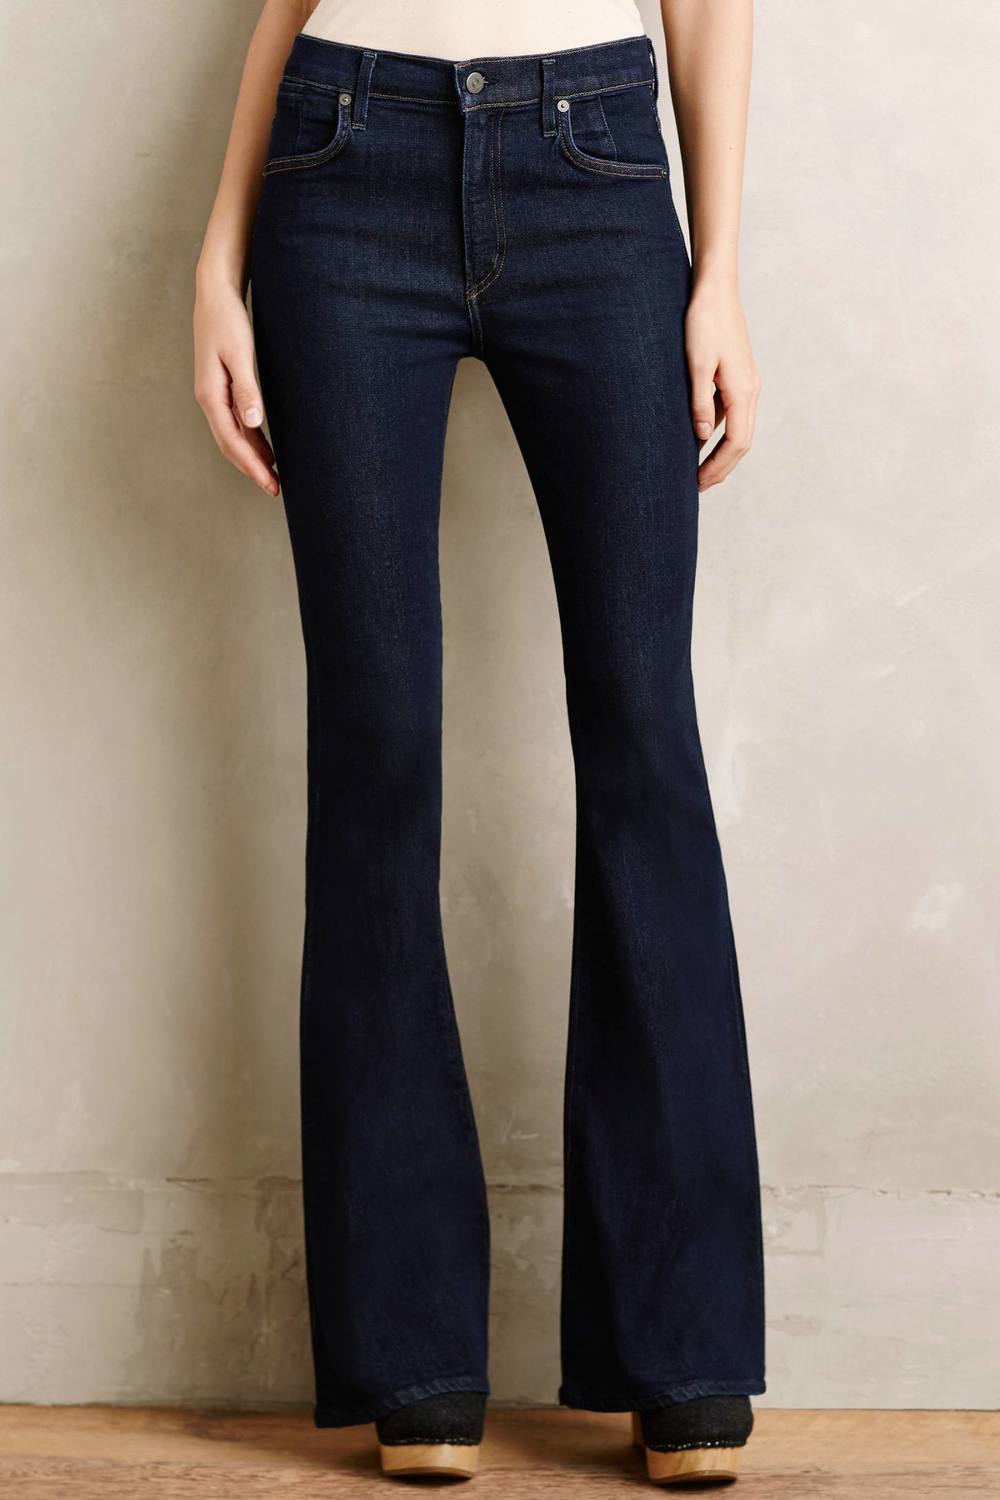 Petite Citizens of Humanity Fleetwood High Rise Flare Jeans. Anthropolgie. $228.